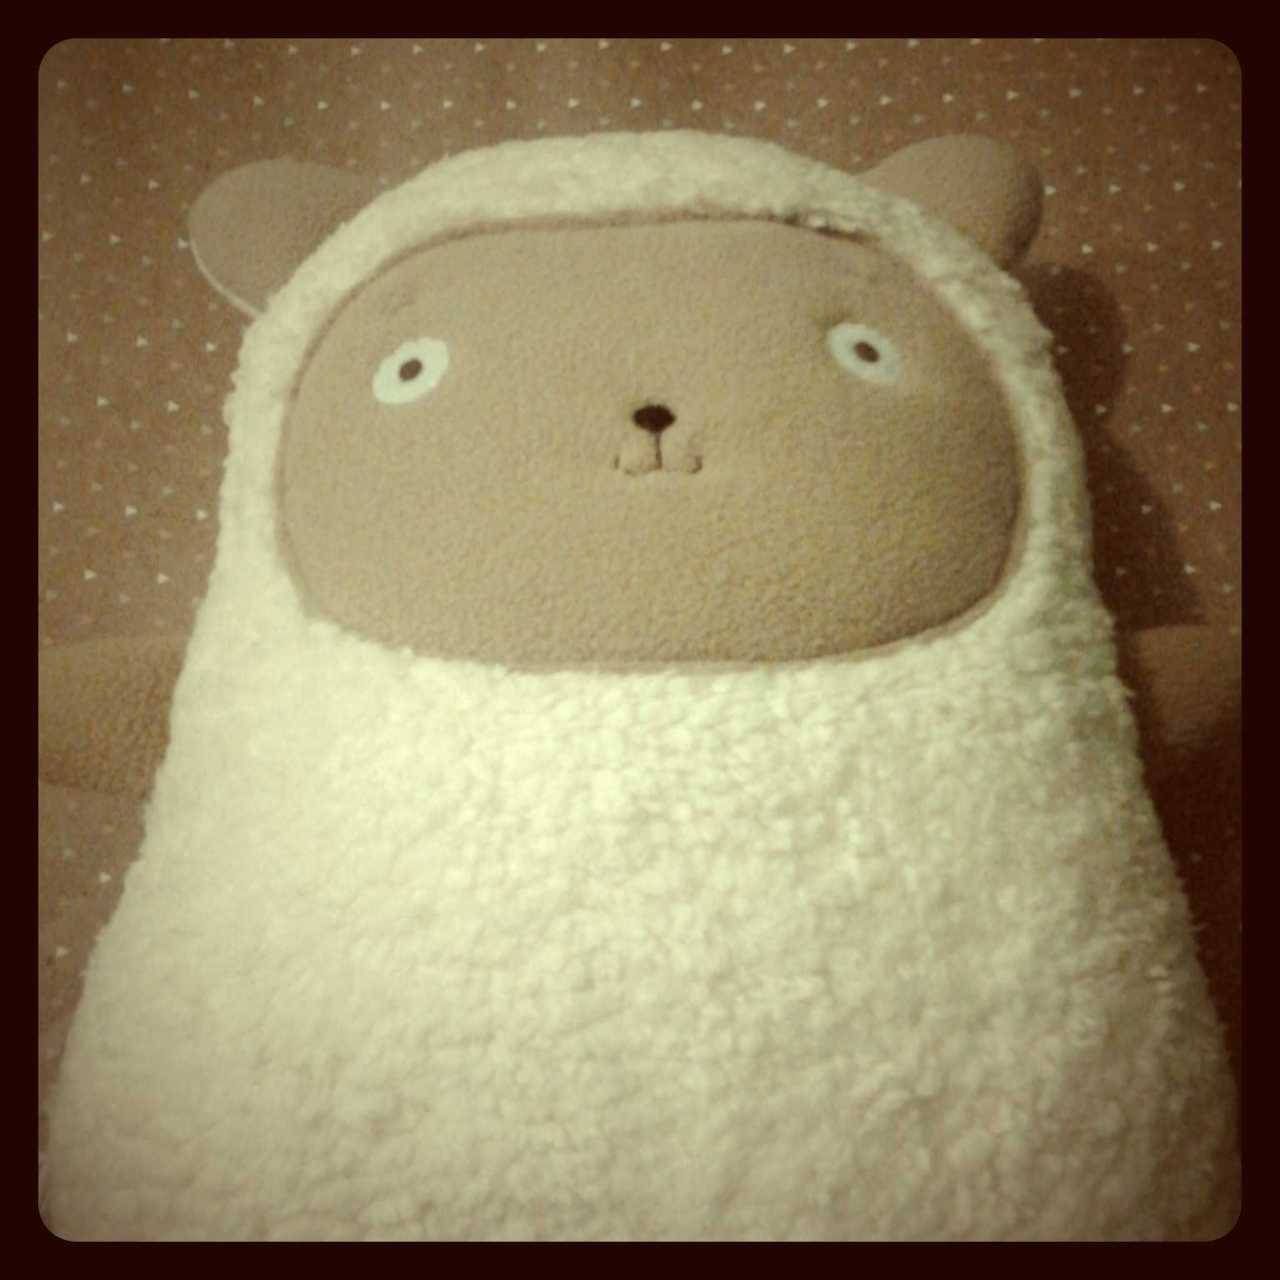 "joyceechan:  no need to count sheeps with this #plush #monsterella #sheep #pillow  Plush pillow collection launch at The Pocket Universe Art Collective  ""Blank Canvas"" features the merchandise of Blanco Quaderno, Burp, Feralina & Feralie, Jeepney Rock Stop, Monsterella Plush Art, Paper Wallets, Playground Love Shop, Soul Flower, TigaSouth & Woozy! Guest performances by Turbo Goth, Read Our Lines, Constraint and more, c/ o Purpleturtlealien! :) Entrance is P150 with a free drink :) Find them all on Facebook. Email pocketuniverseart@gmail.com. March 2, 8pm @ 2F Saguijo bar+cafe"